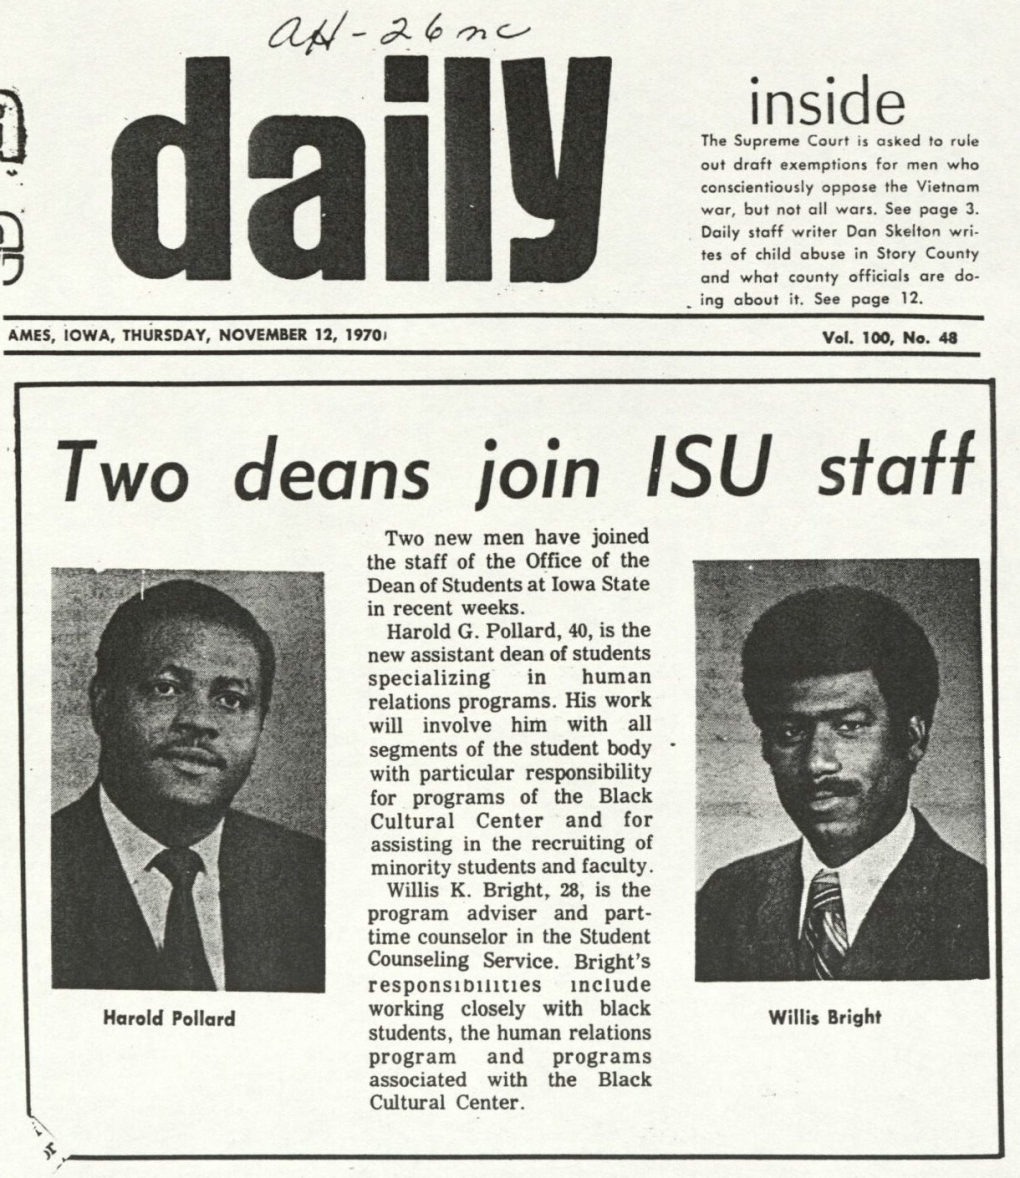 Iowa State Daily news clipping announcing the hiring of Harold Pollard and Willis Bright.